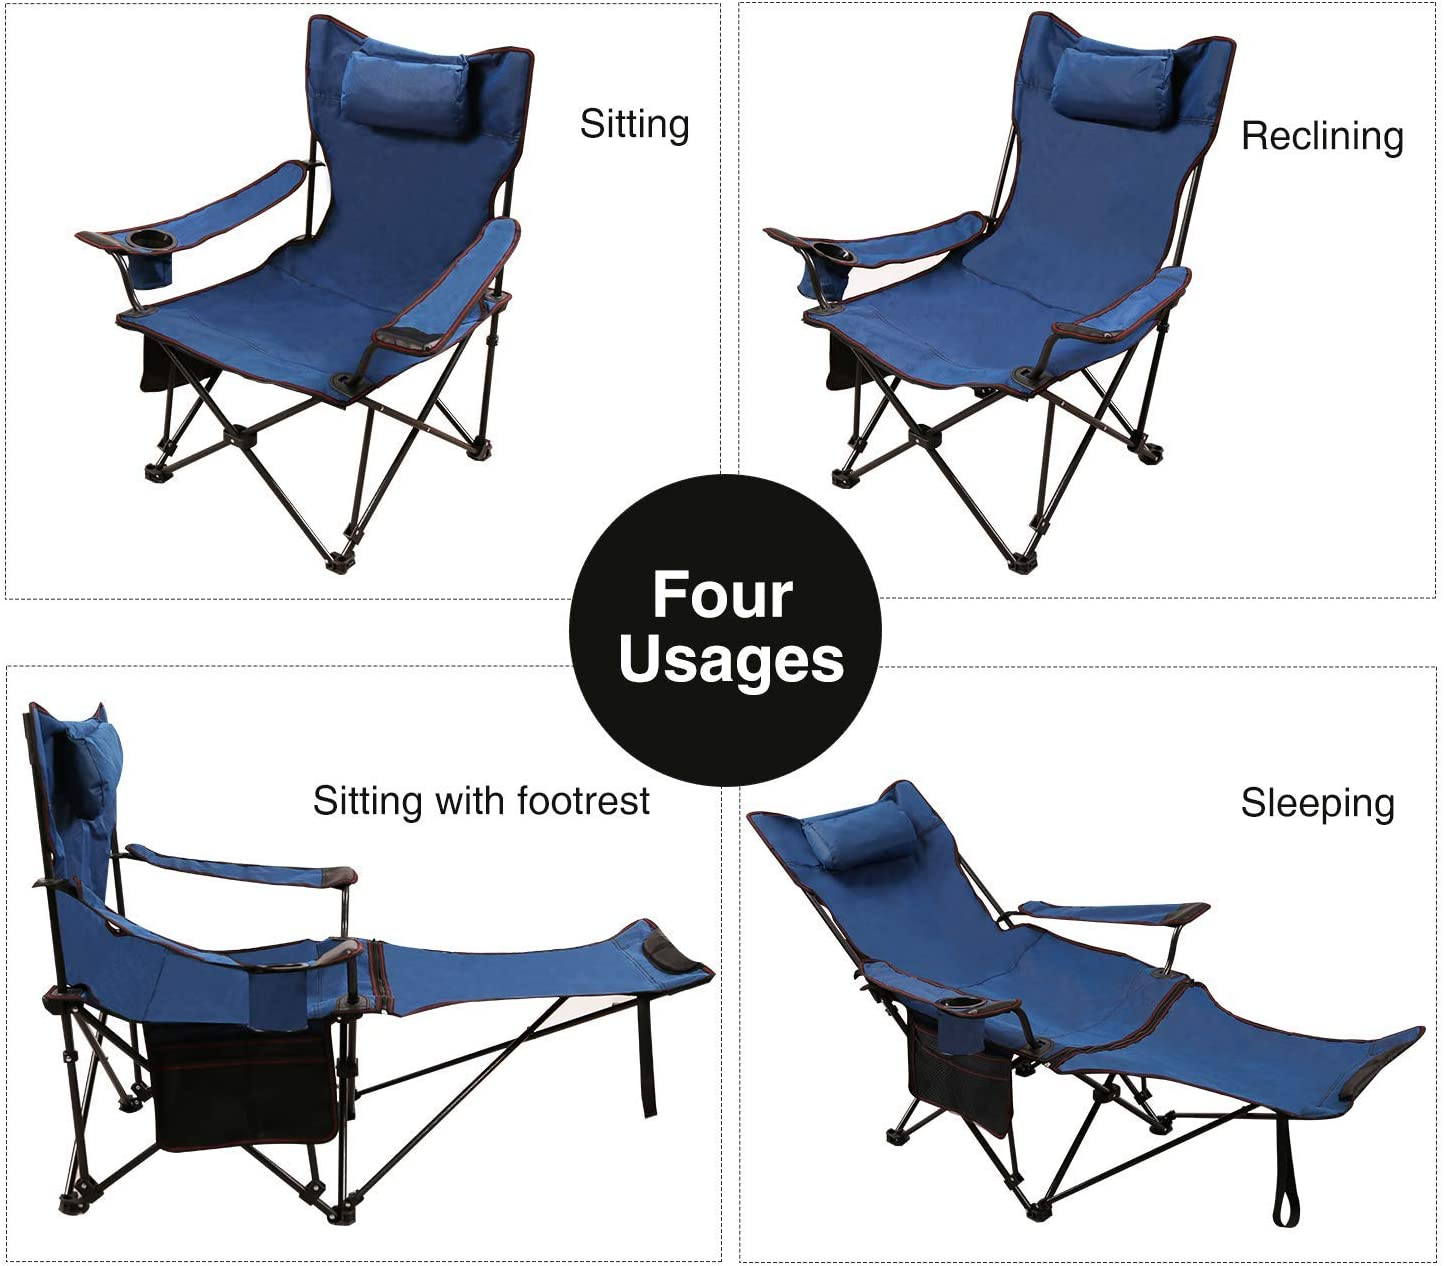 Stable Reclining Lounge Chair With Cup Holder,Portable Chair For Outdoor Activities,Folding Camping Chair With Footrest A